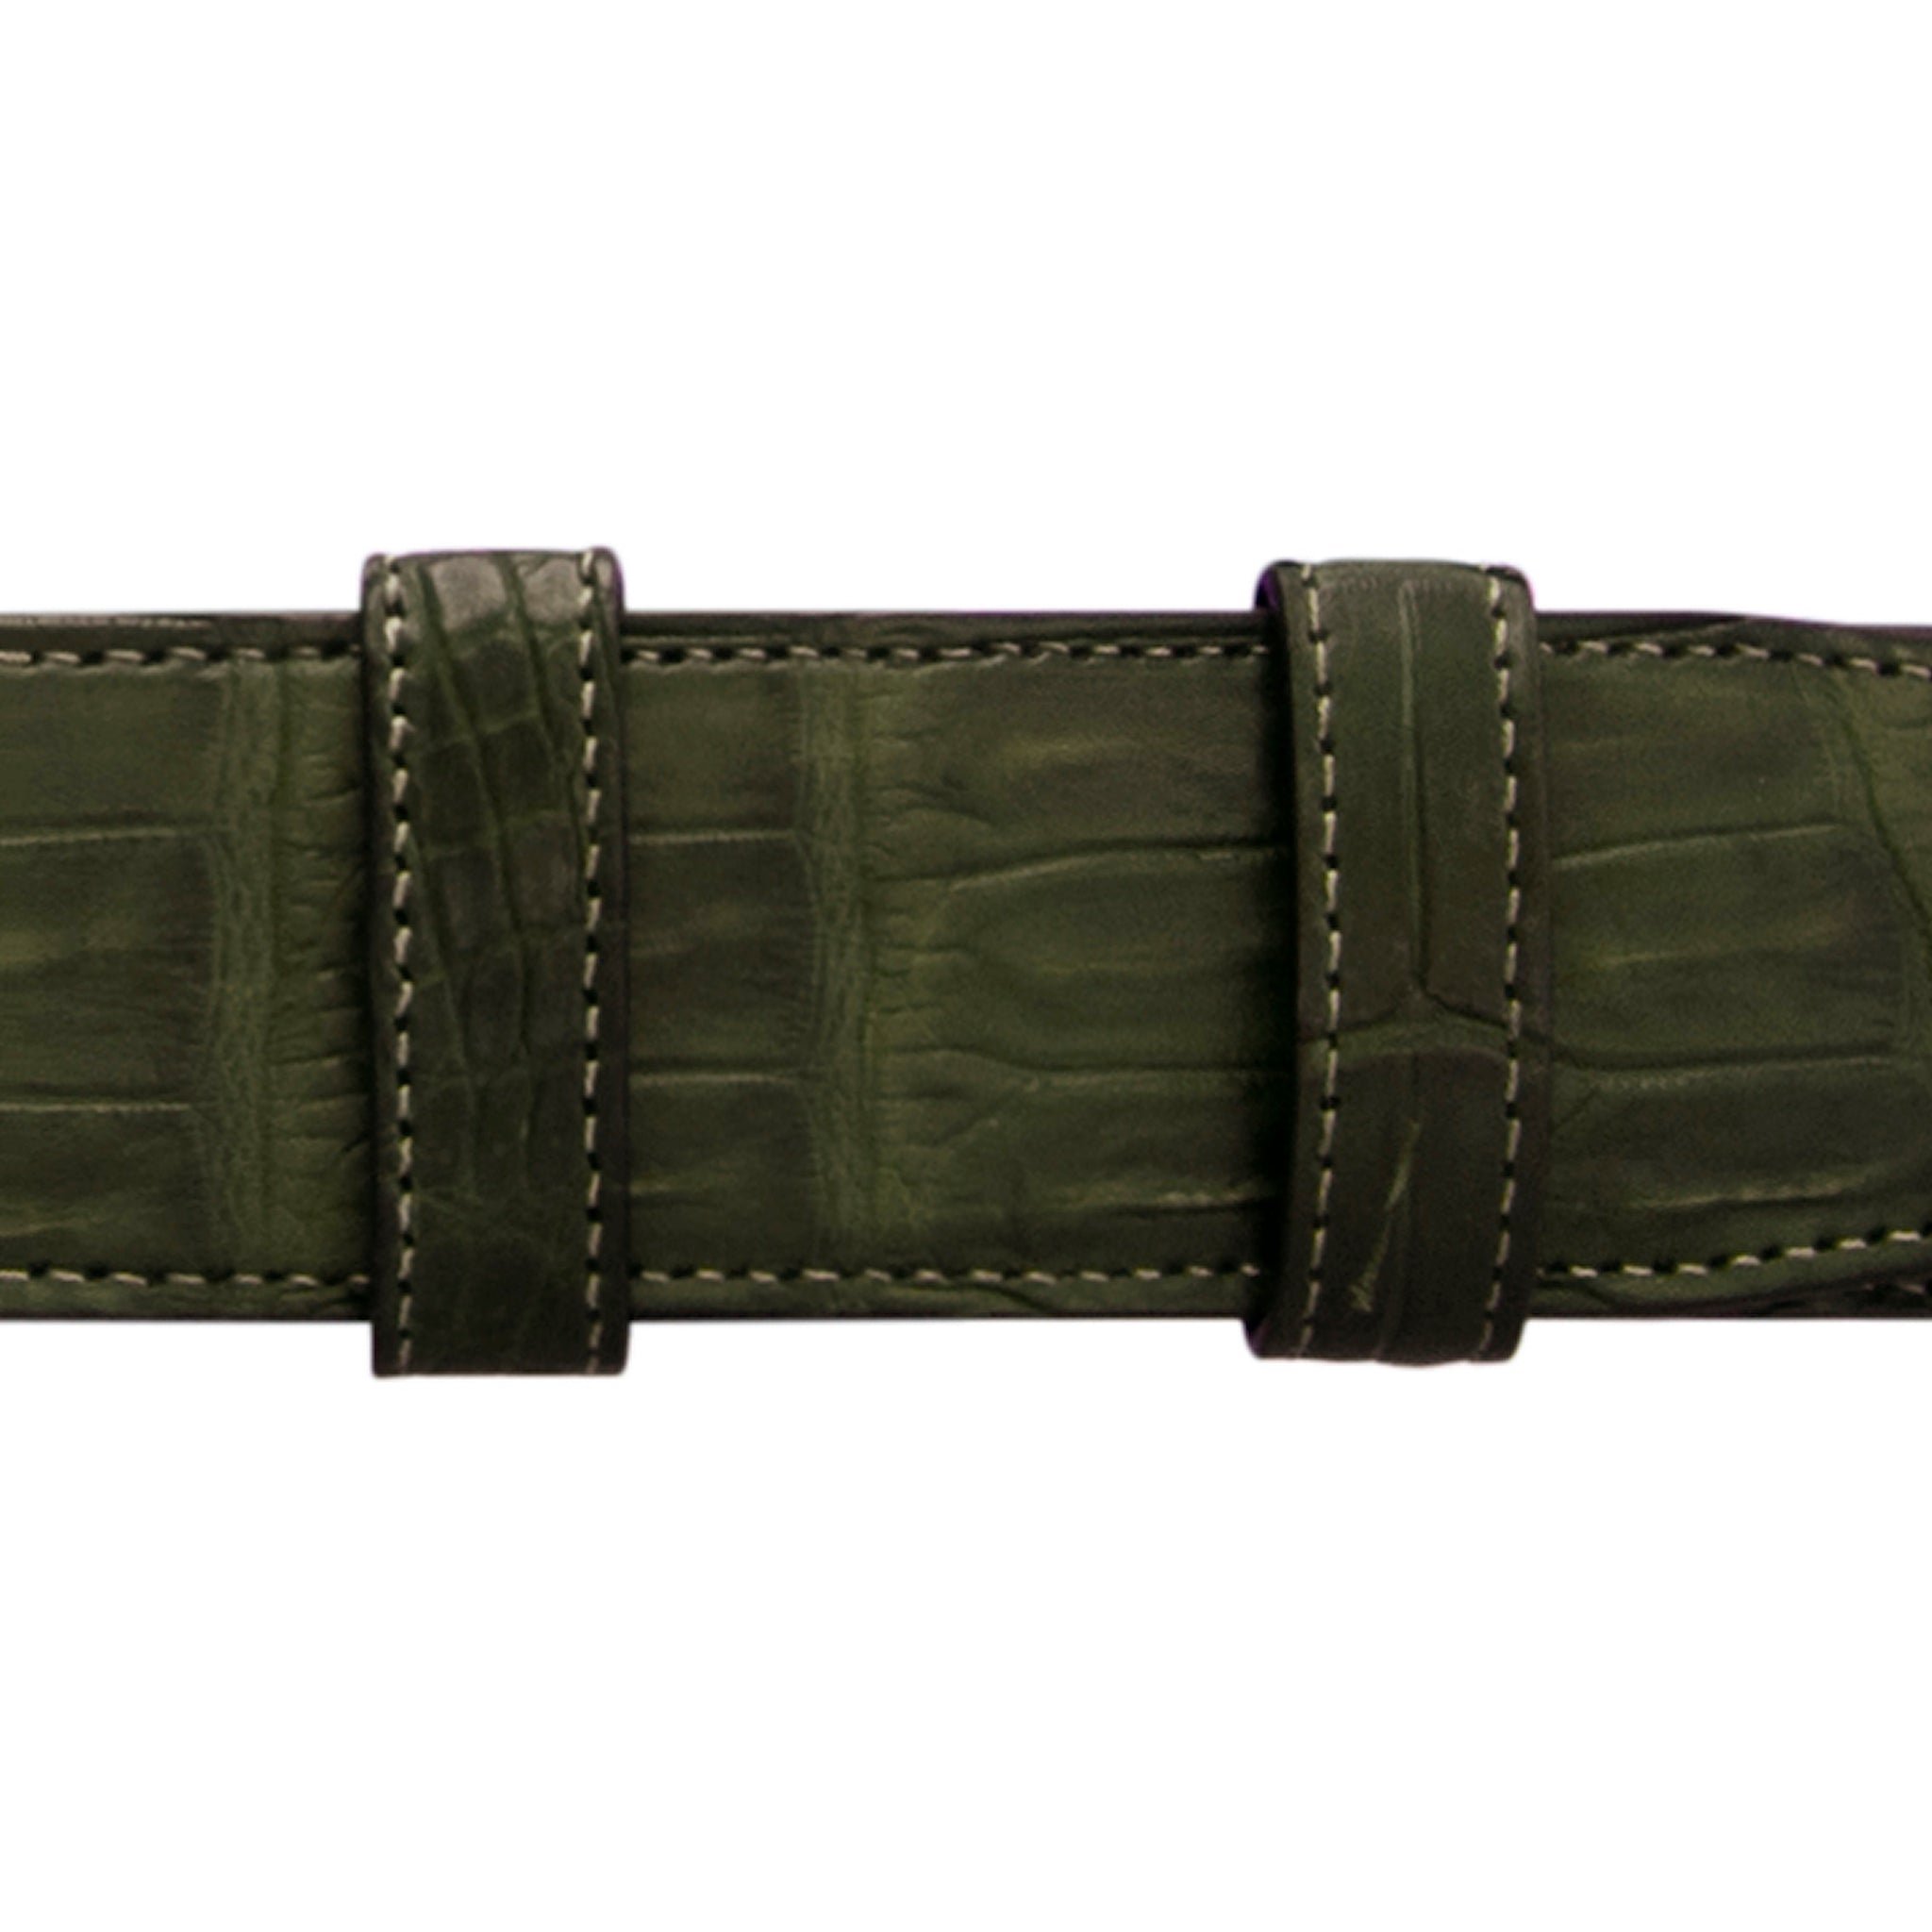 "1 1/4"" Olive Seasonal Belt with Winston Dress Buckle in Polished Nickel"